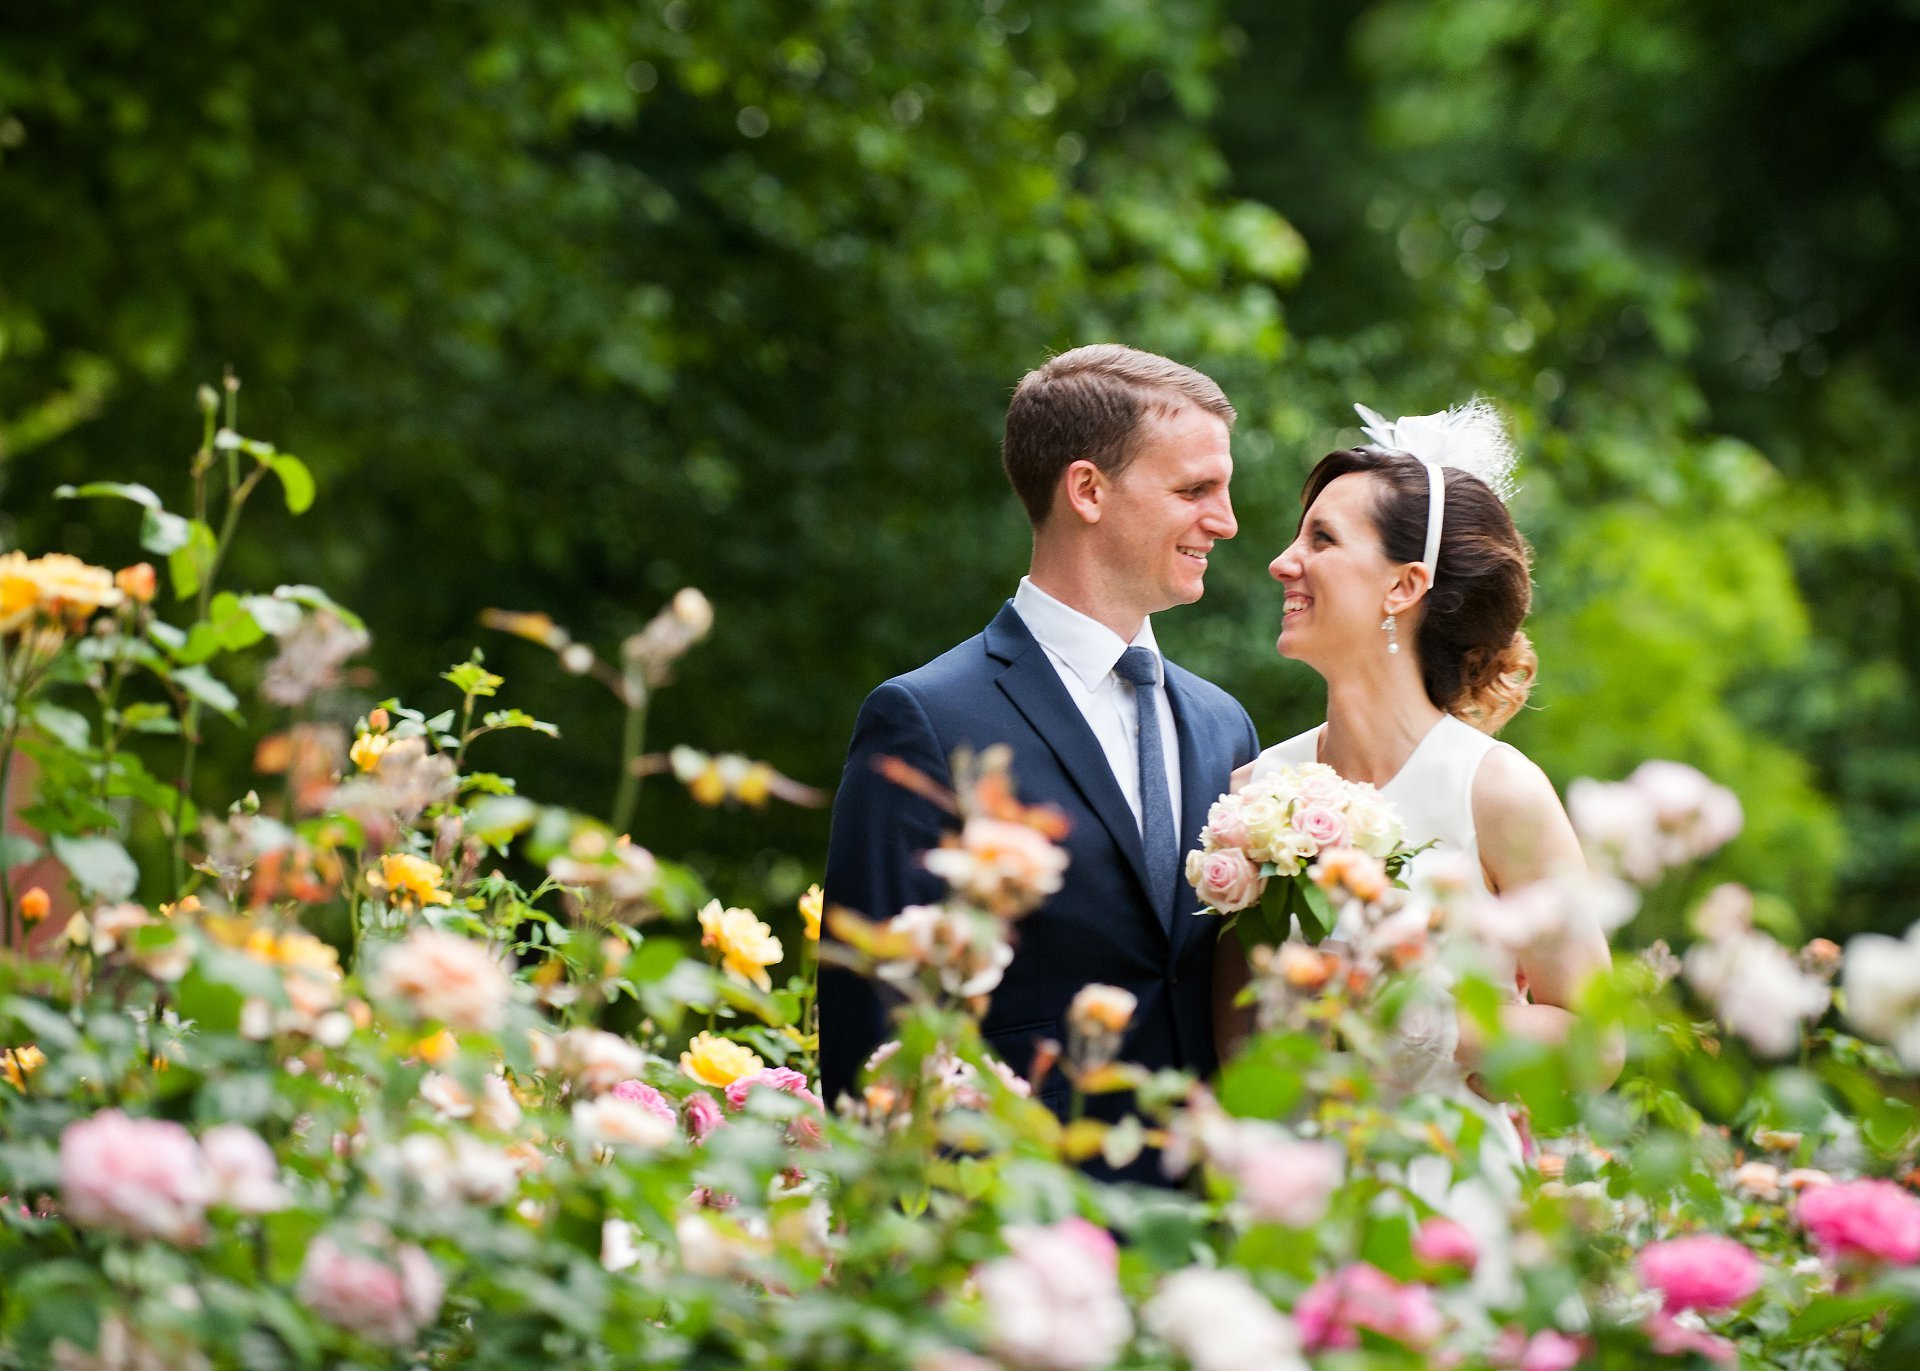 Bride and groom in a rose garden in Chelsea